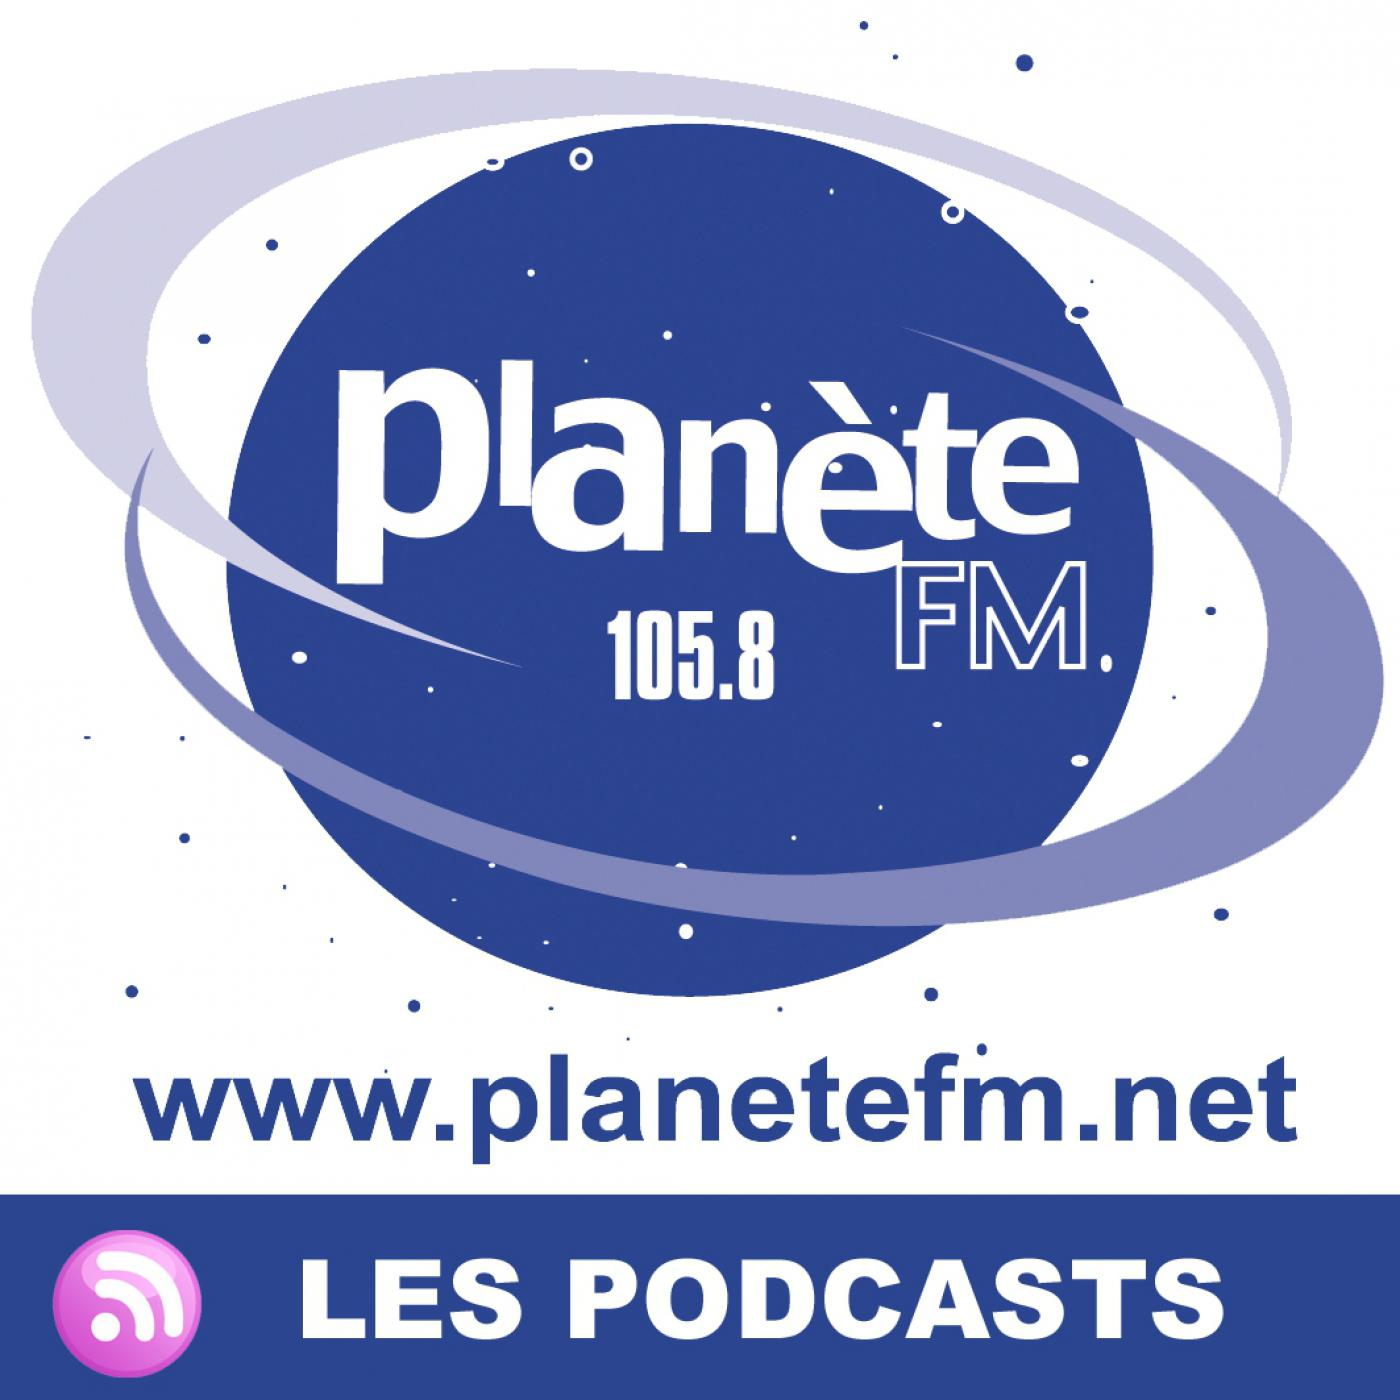 PLANETE, LES PODCASTS